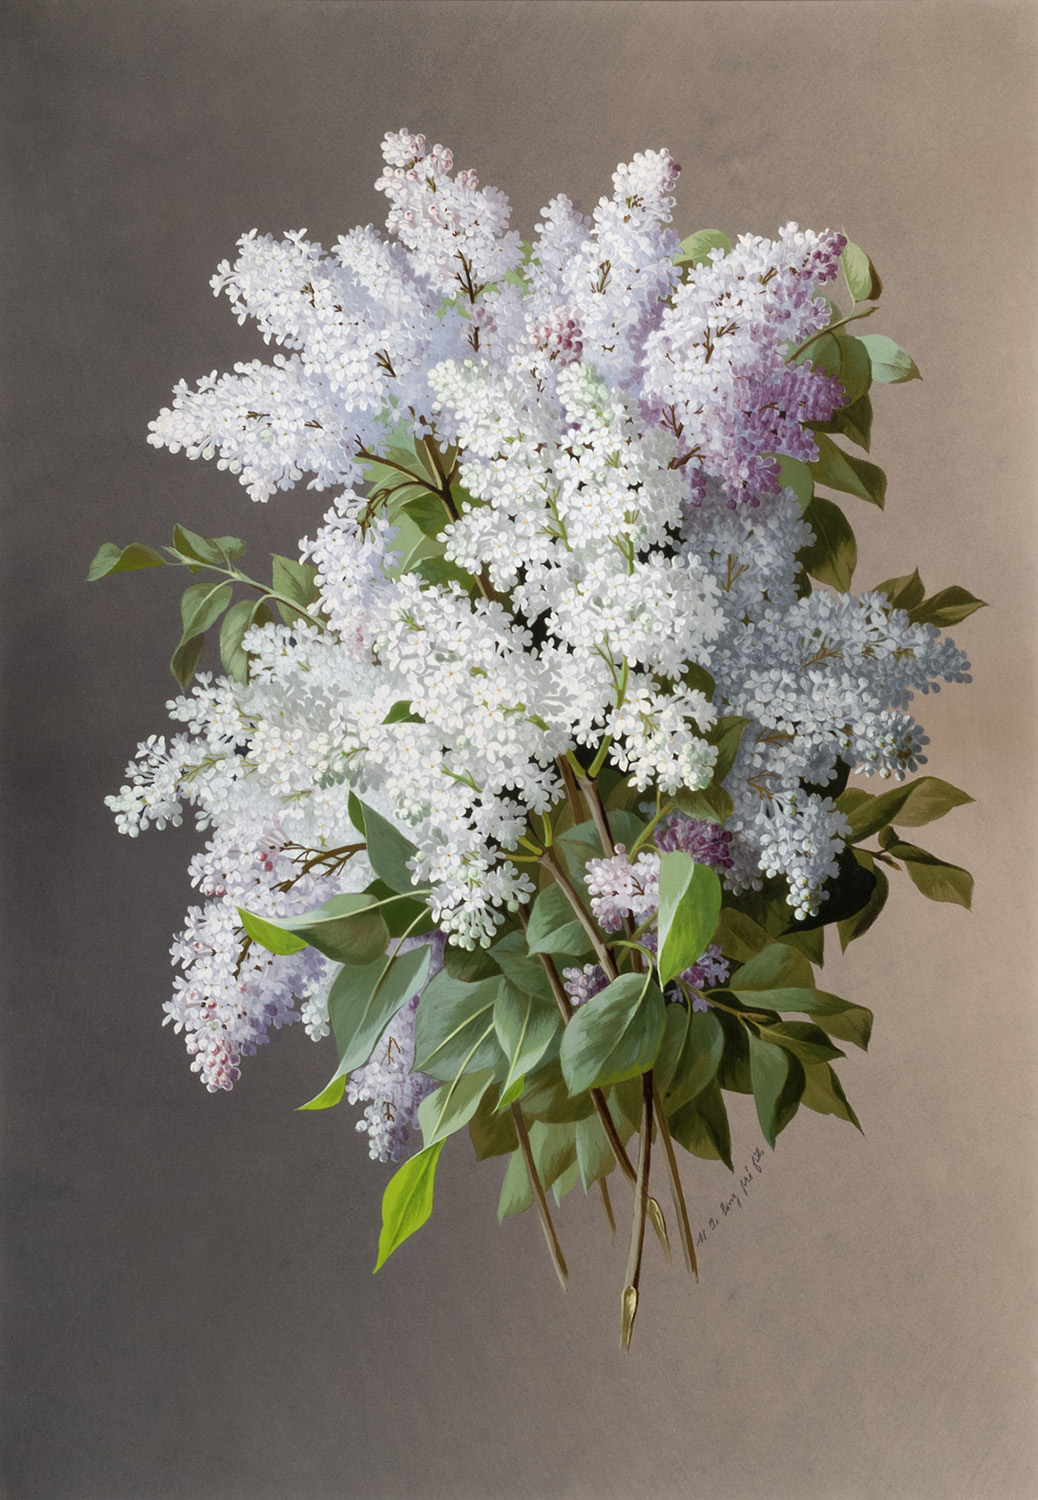 Raoul-Victor-Maurice Maucherat de Longpré, <i>Lilacs</i>, ca. 1890s. Eli and Edythe Broad Art Museum, Michigan State University, gift of the Estate of Elizabeth L. Jarrad.